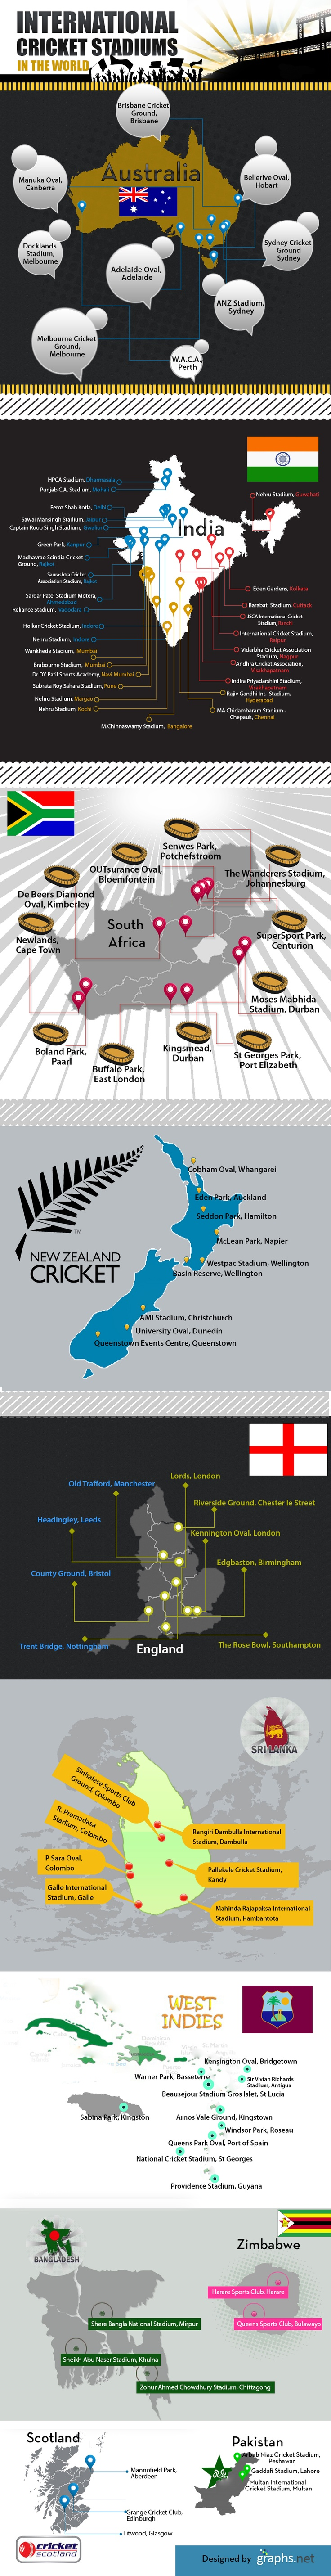 International Cricket stadiums #Cricket #stadiums #Infographics #Sports #World #International